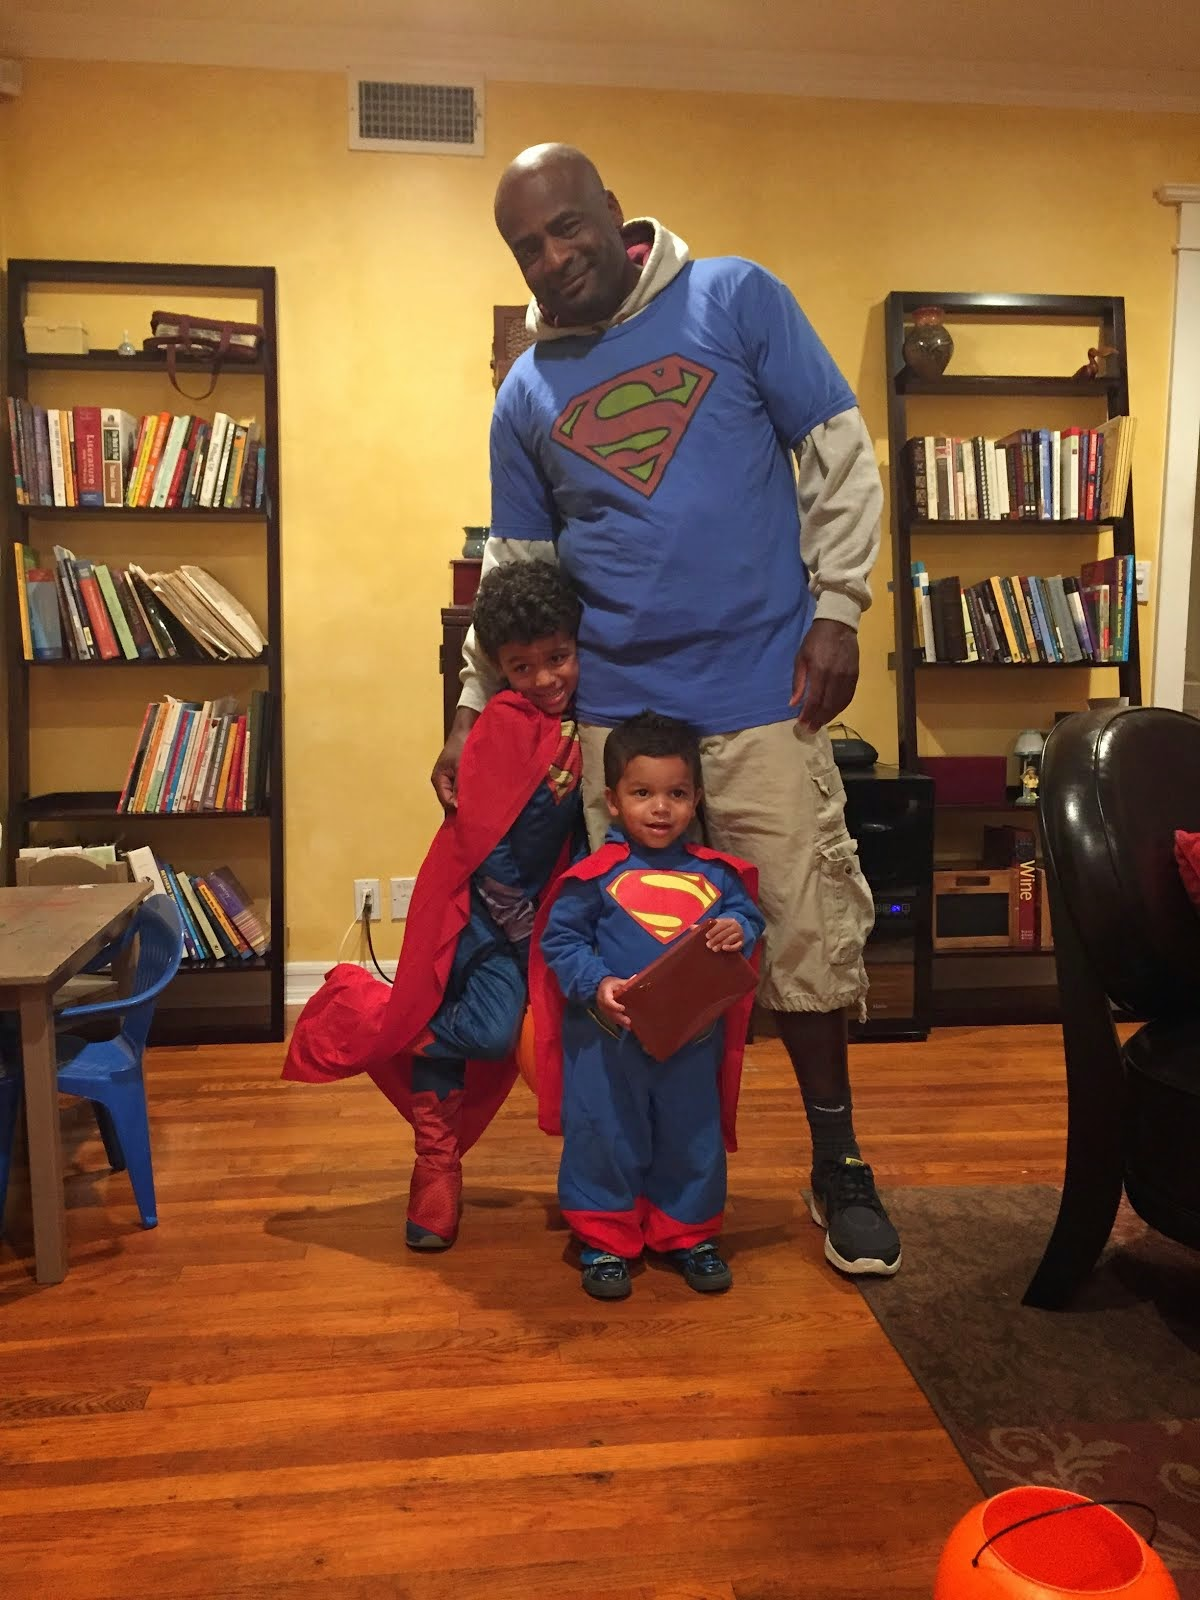 My Super Men!